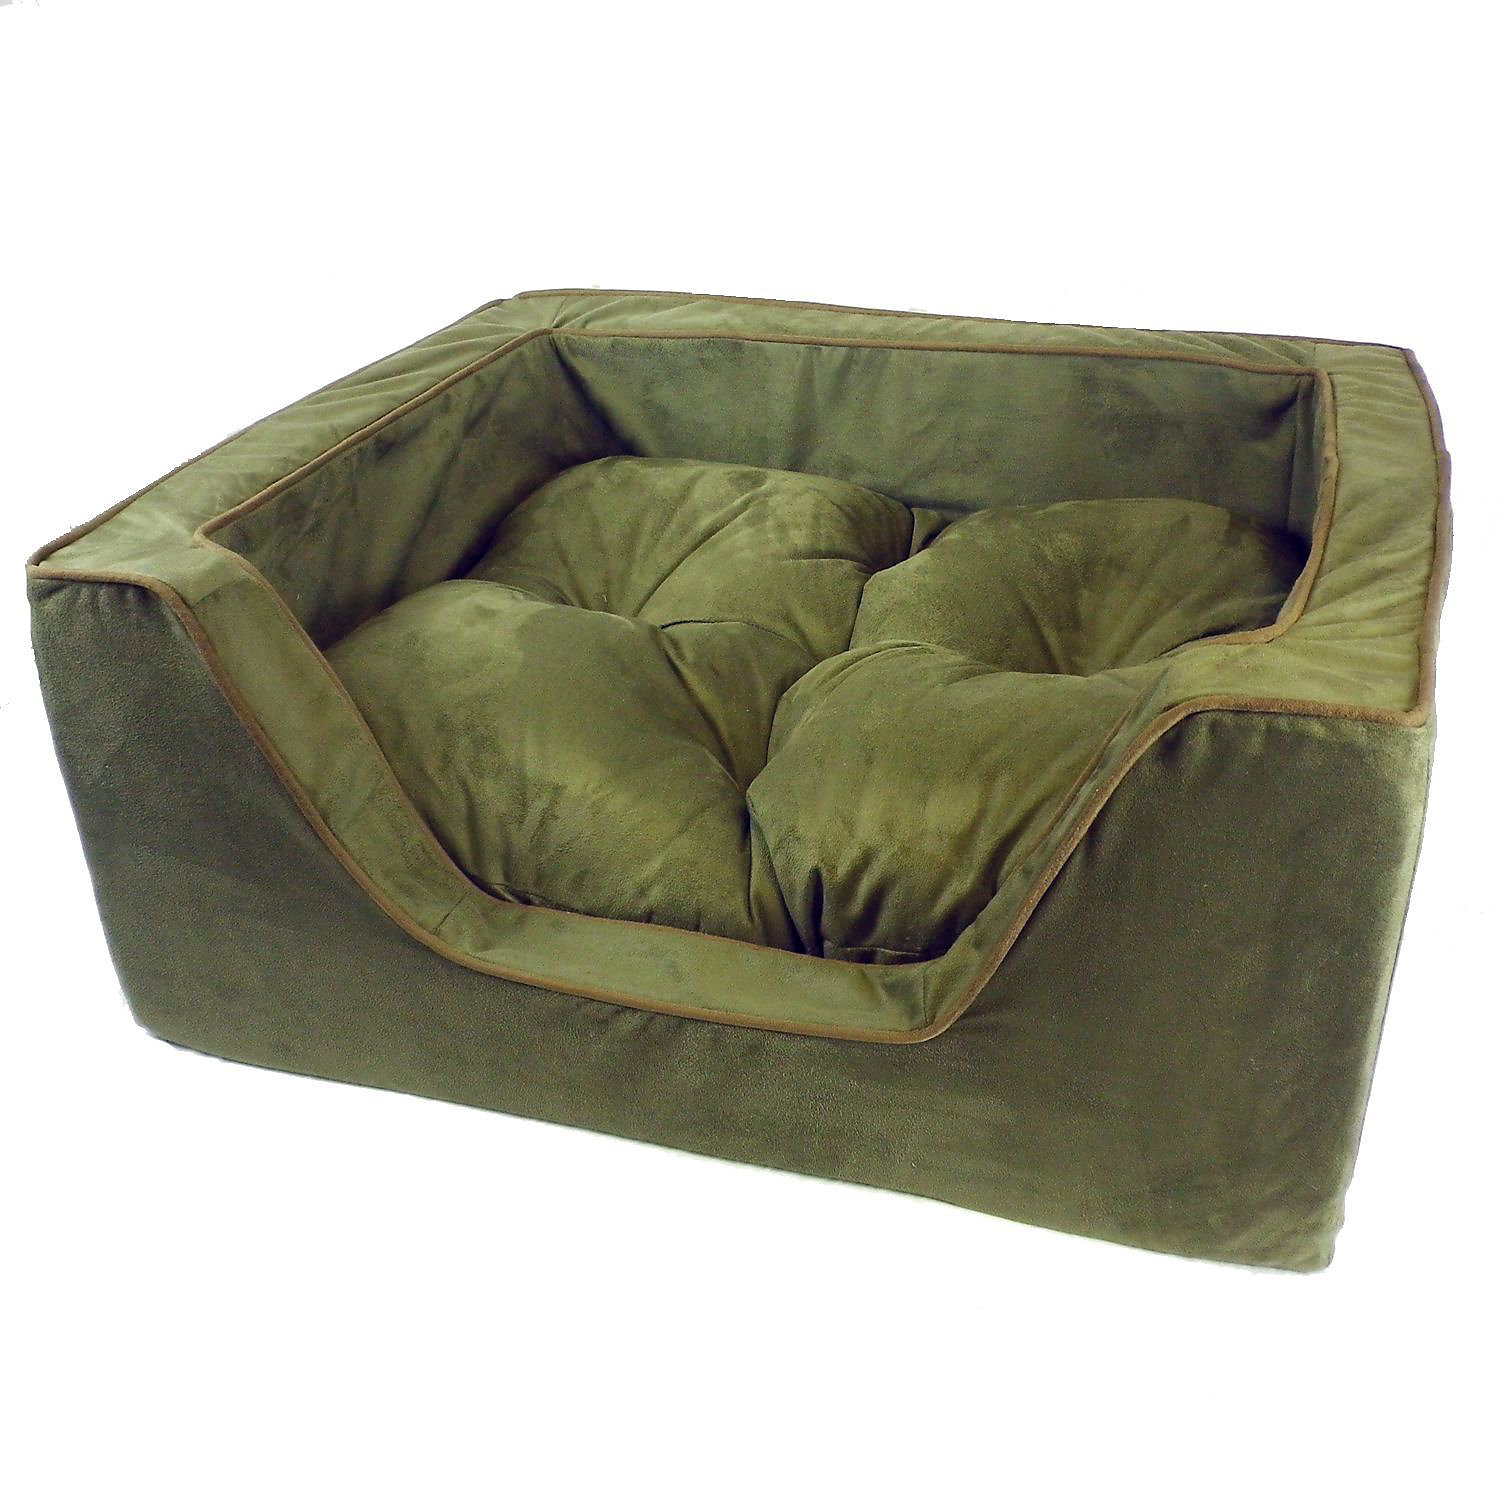 Snoozer Luxury Square Bed in Olive with Coffee Cording 27 L x 23 W Large Green  Brown